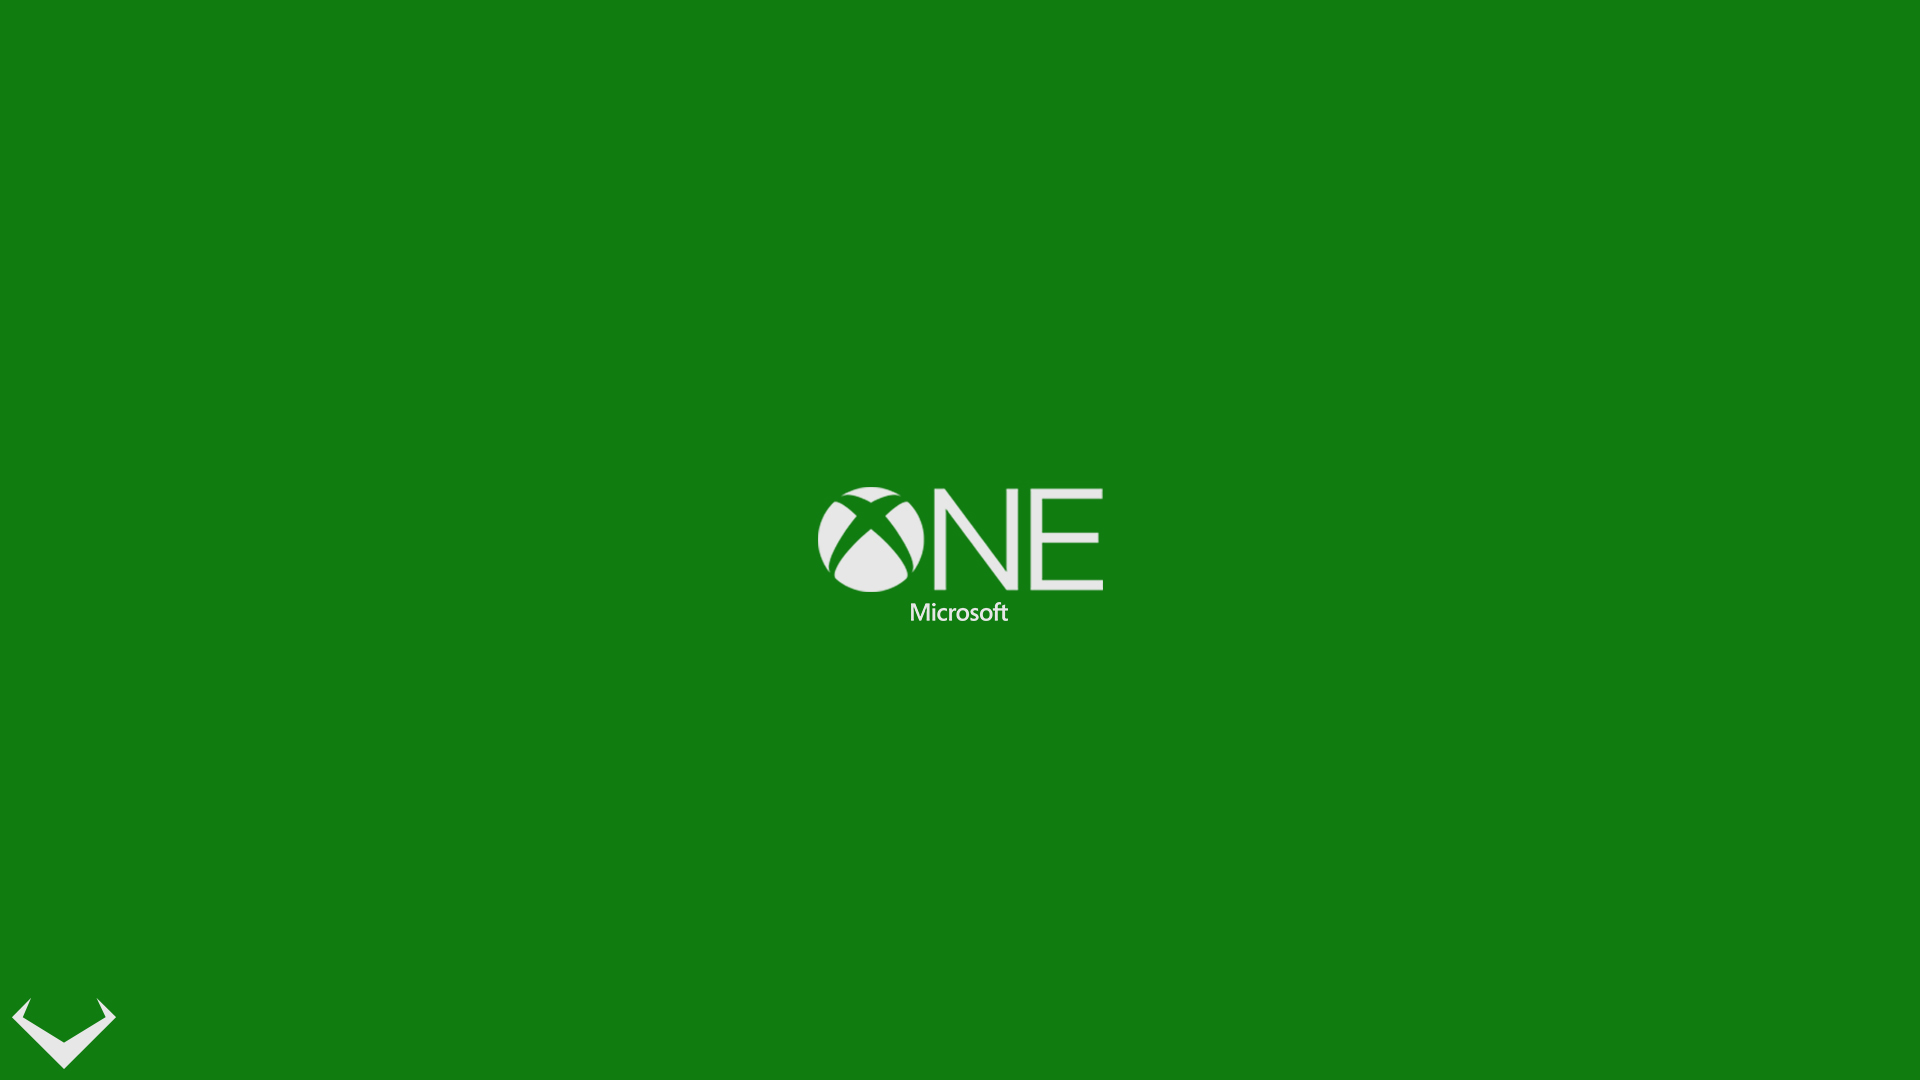 Xbox One Wallpaper by RLBDesigns on DeviantArt